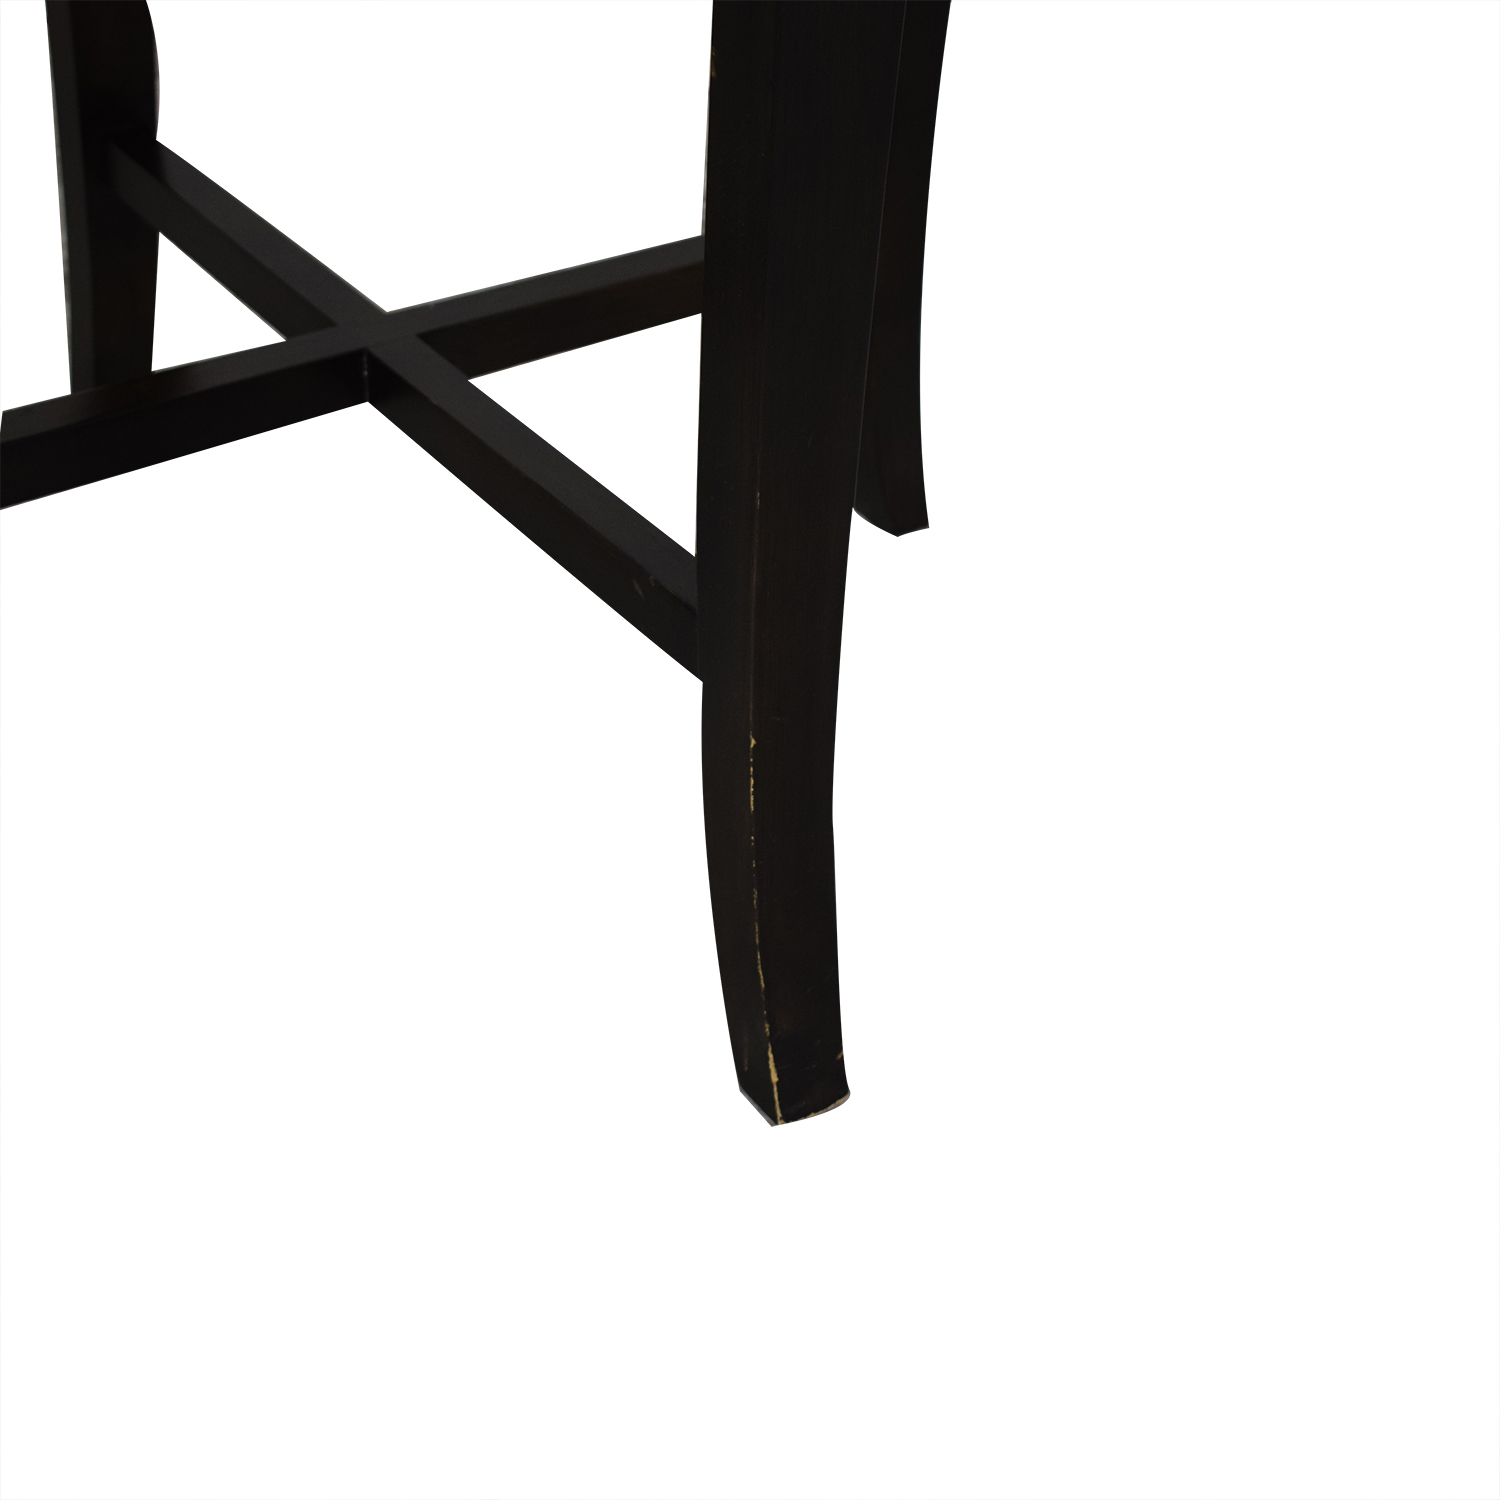 shop Crate & Barrel Halo Ebony Round Dining Table with Glass Top Crate & Barrel Dinner Tables